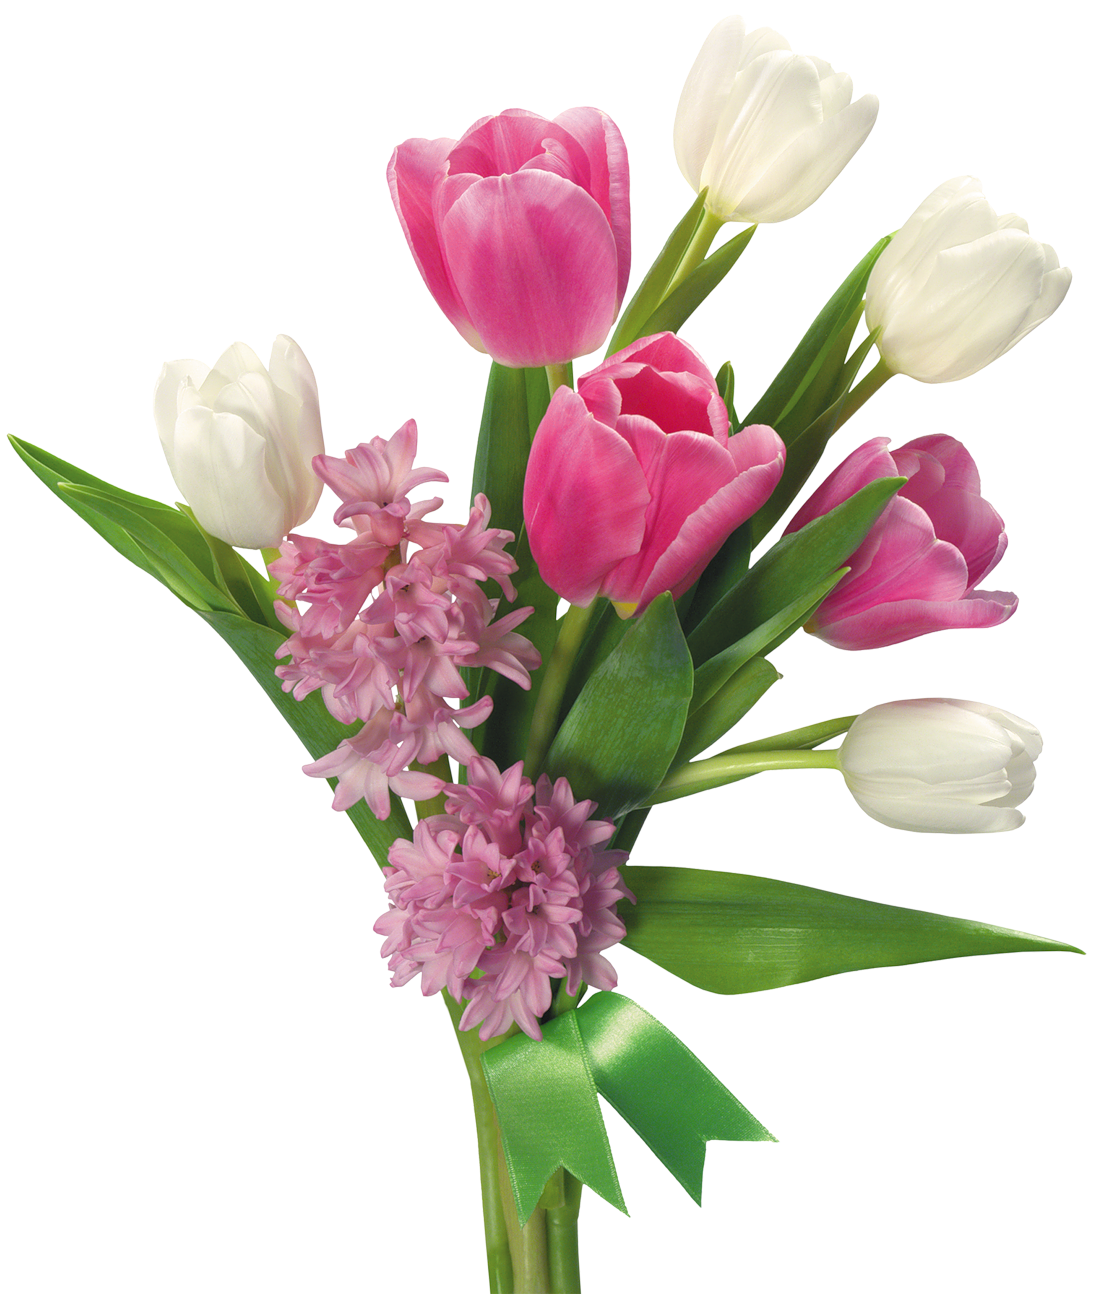 Bouquet Png Images Transparent Free Download Pngmart Com